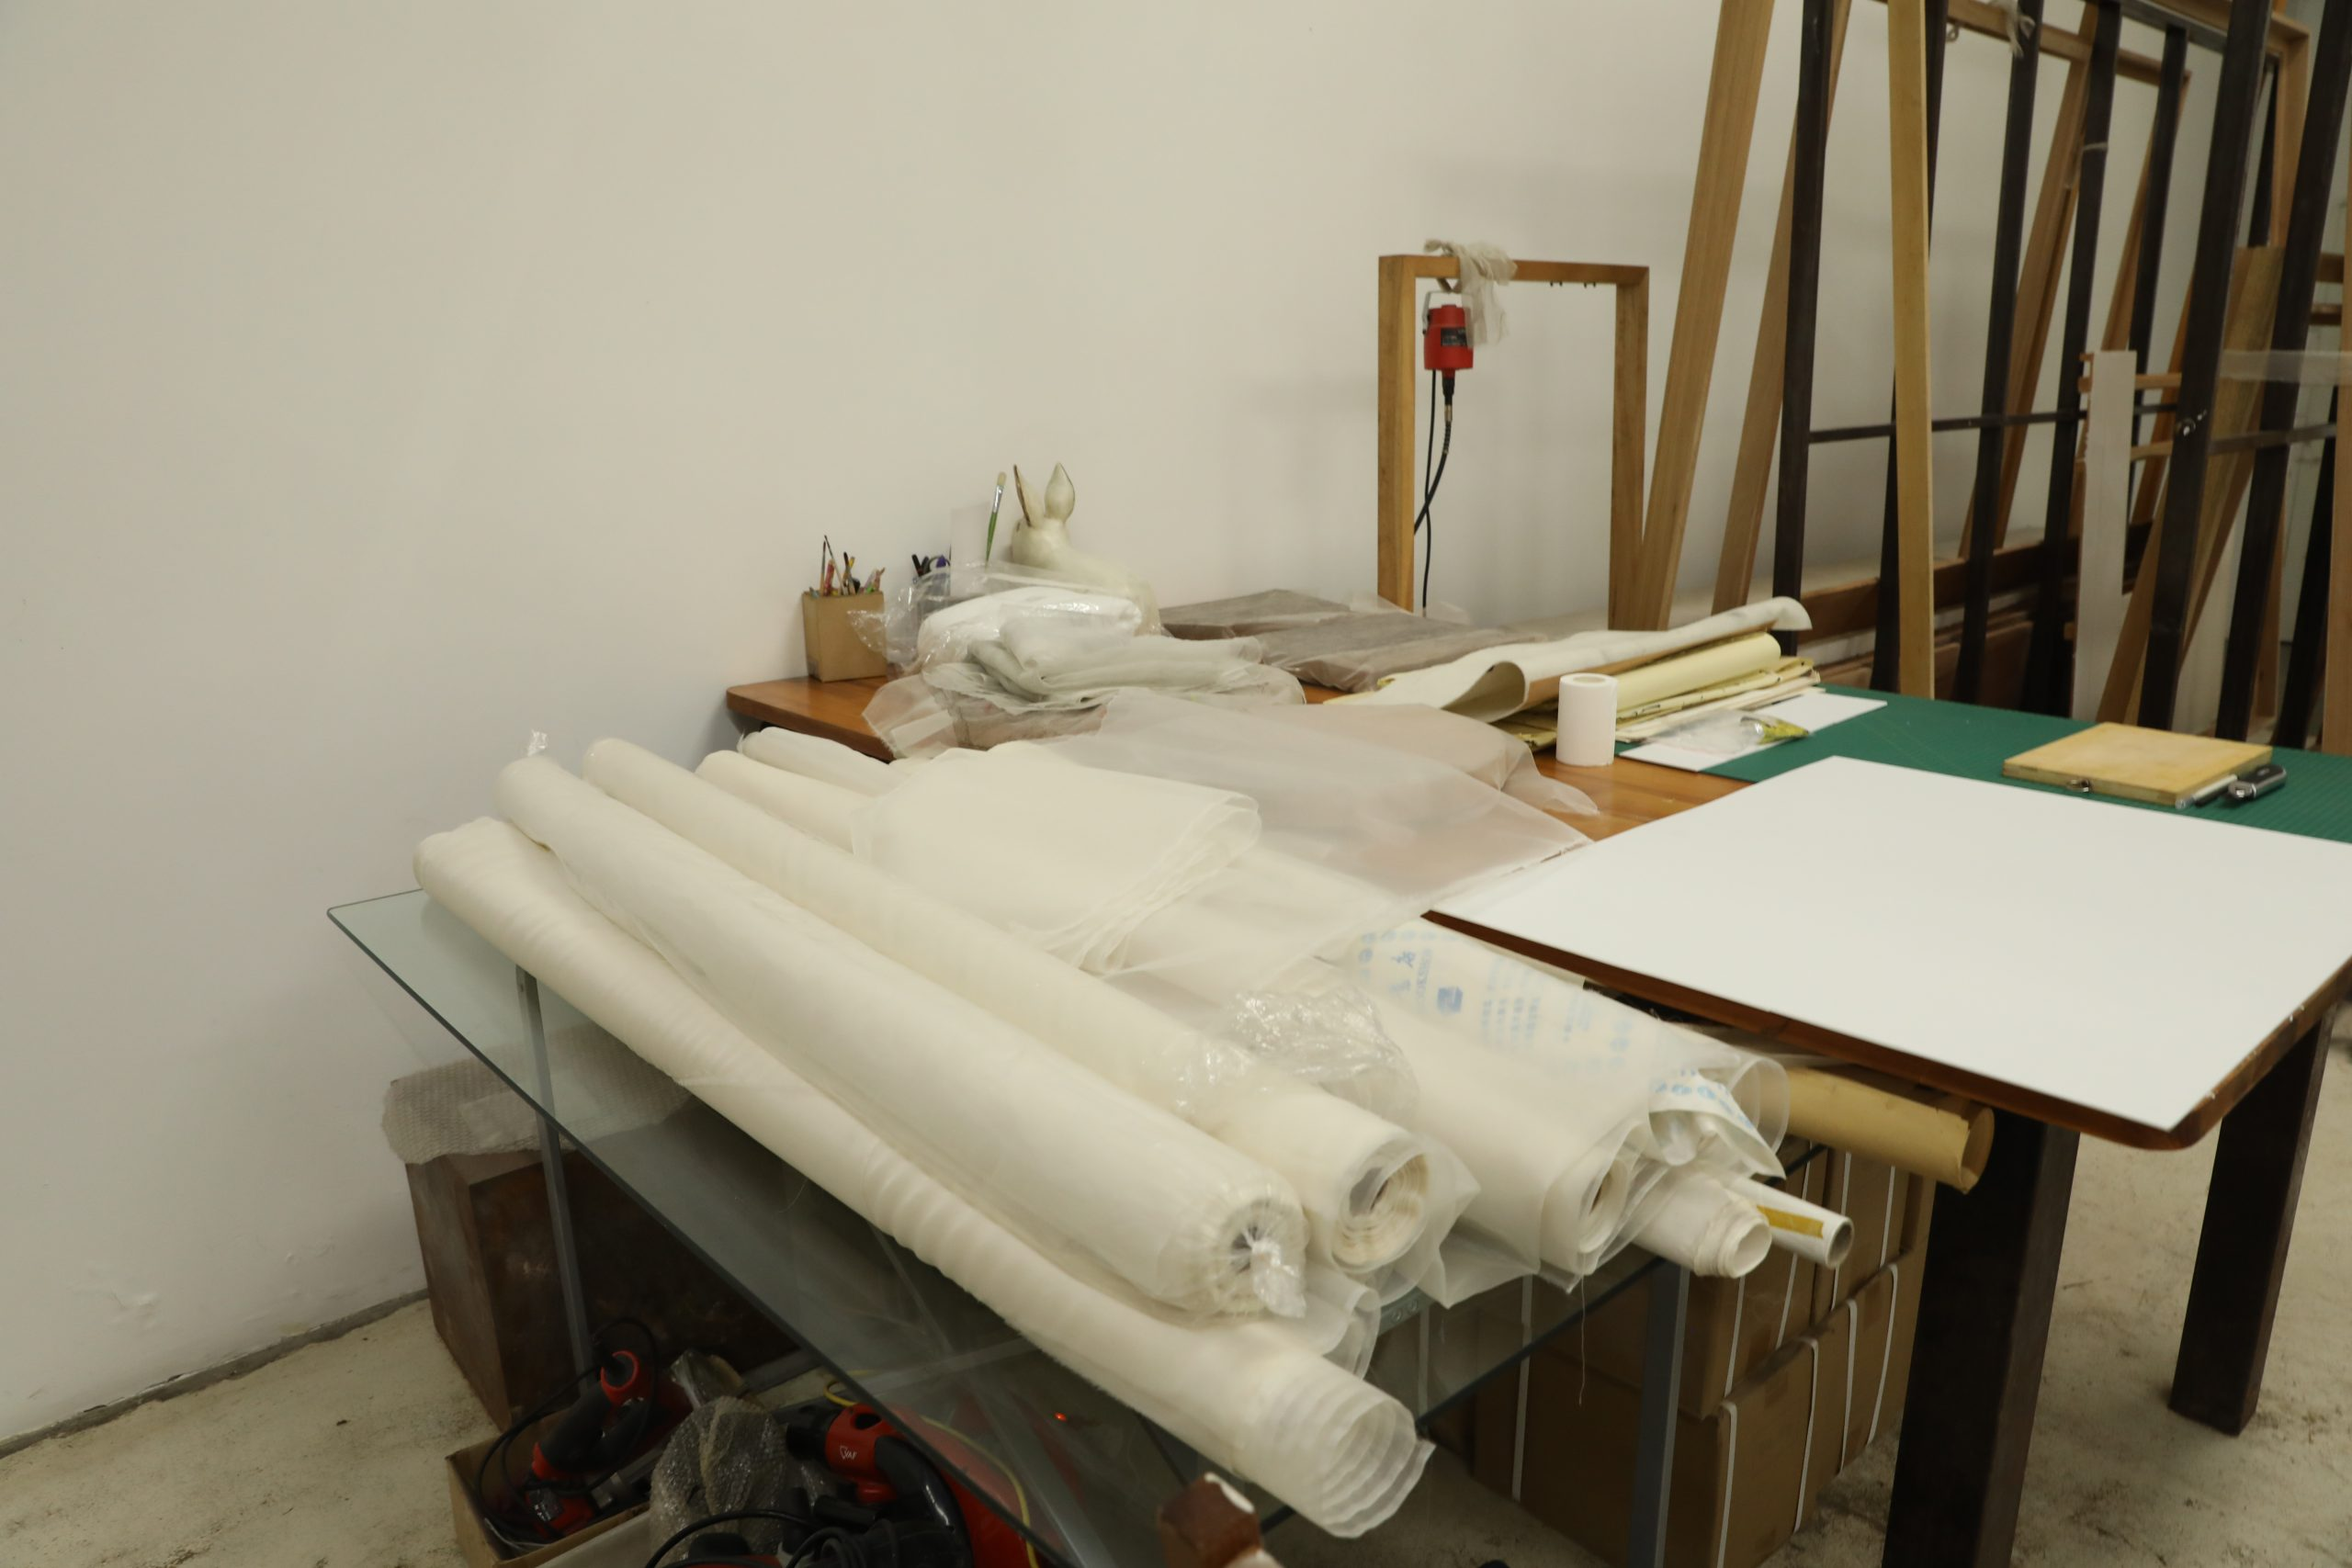 Rolls of silk in Hu Xiaoyuan's studio. Photo commissioned by the Smart Museum of Art during an artist interview. Photo by Yaya Rotem.